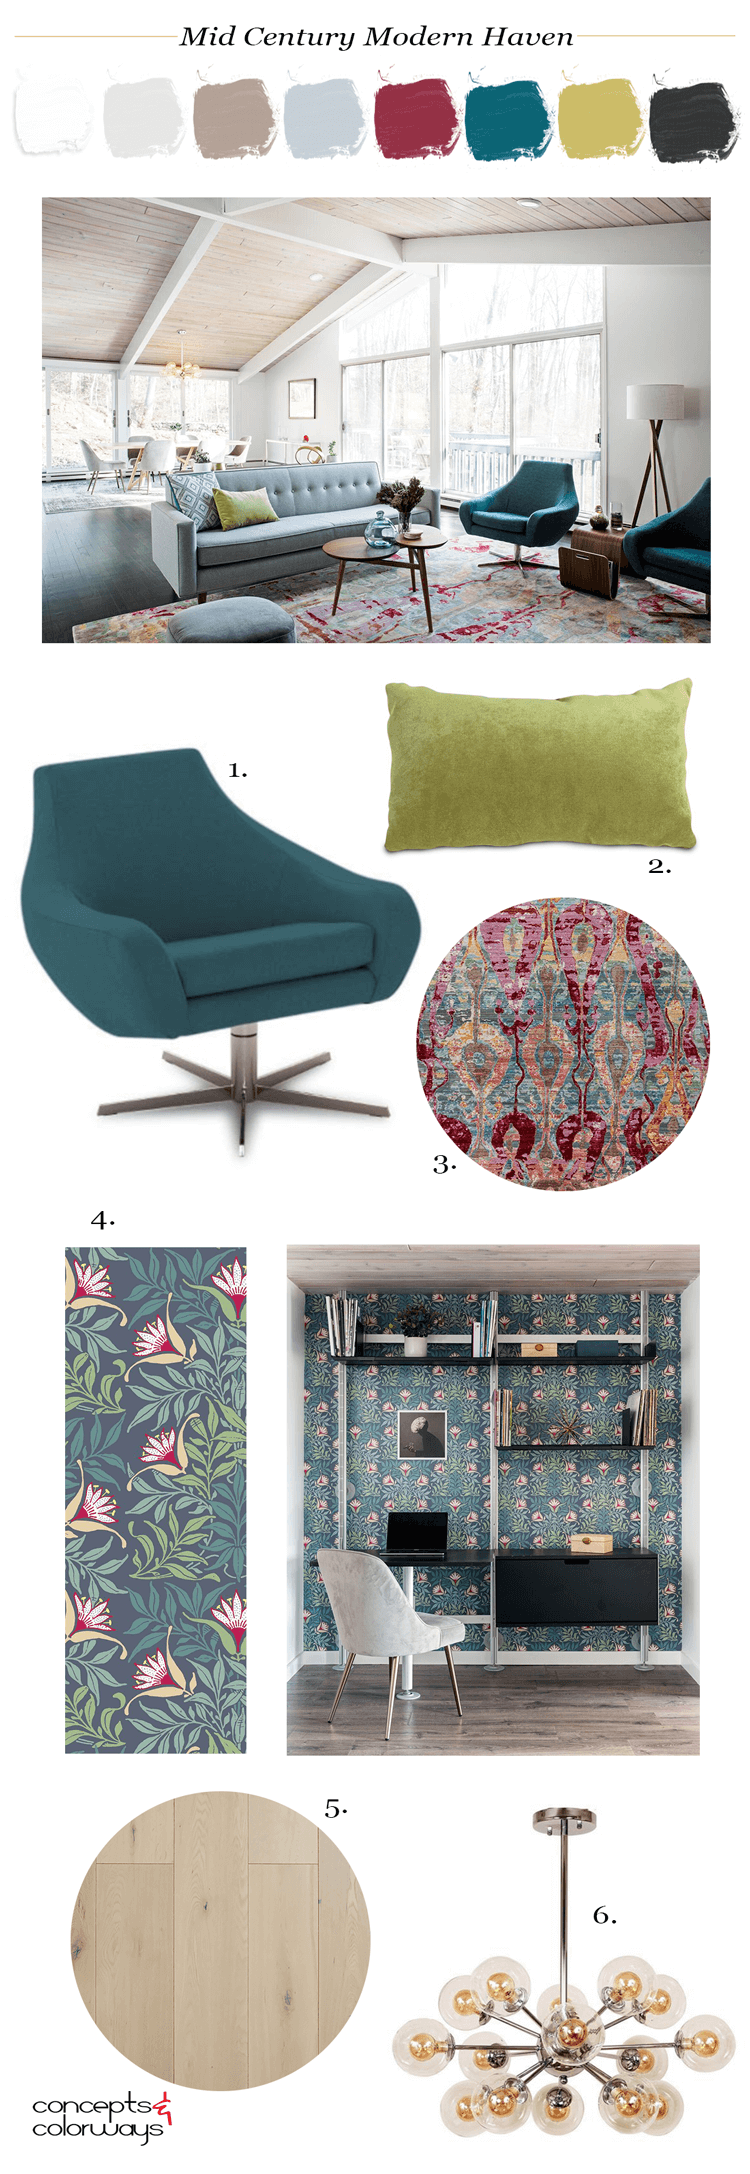 mid century modern, summer home, warm neutrals, beige, taupe, grey walls, teal, pink, teal and pink, mid century modern furniture, color scheme, chartreuse, color palette, pantone red pear, pantone ceylon yellow, pantone quetzal green